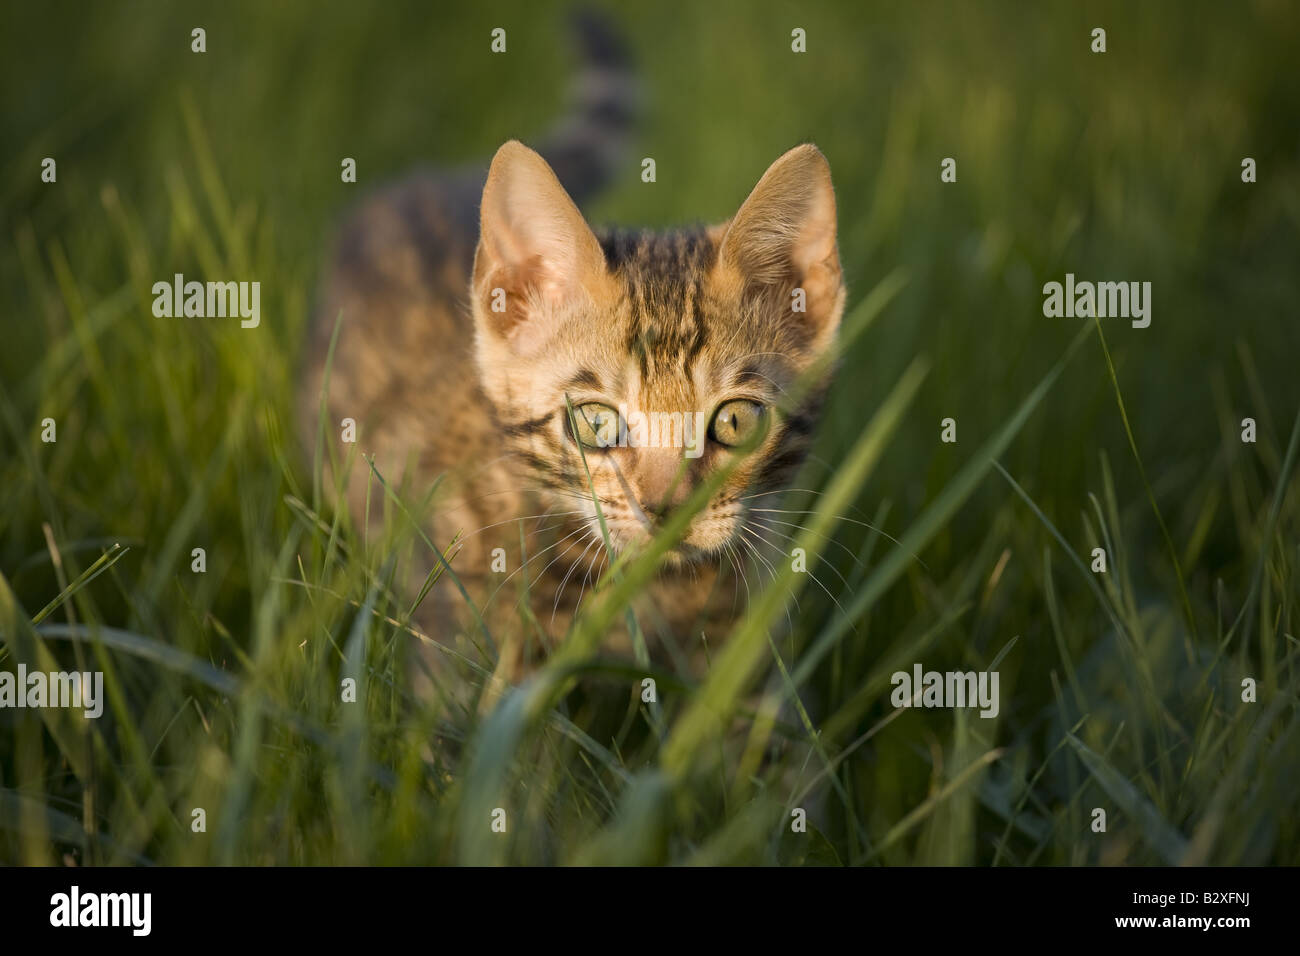 Bengal Kitten Stock Photos & Bengal Kitten Stock Images - Alamy